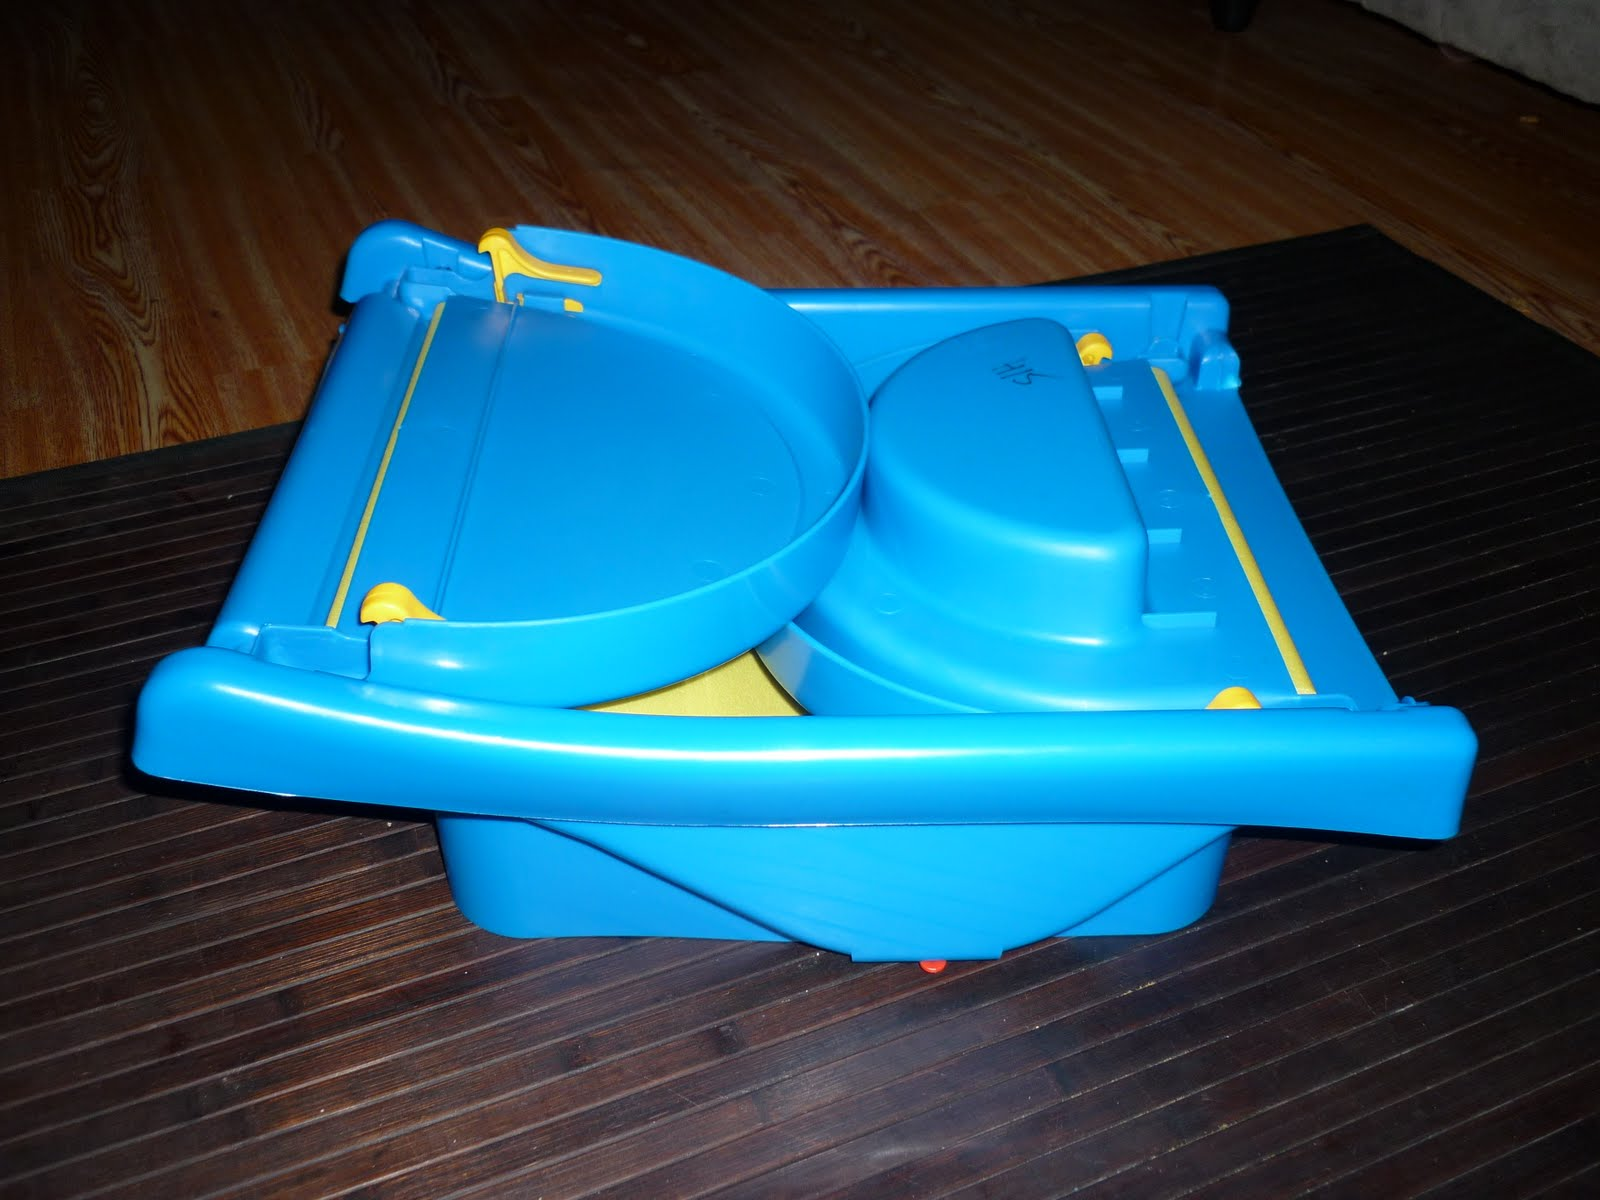 Arel Toys Preloved: safety 1st baby fold up bath tub SOLD) tq